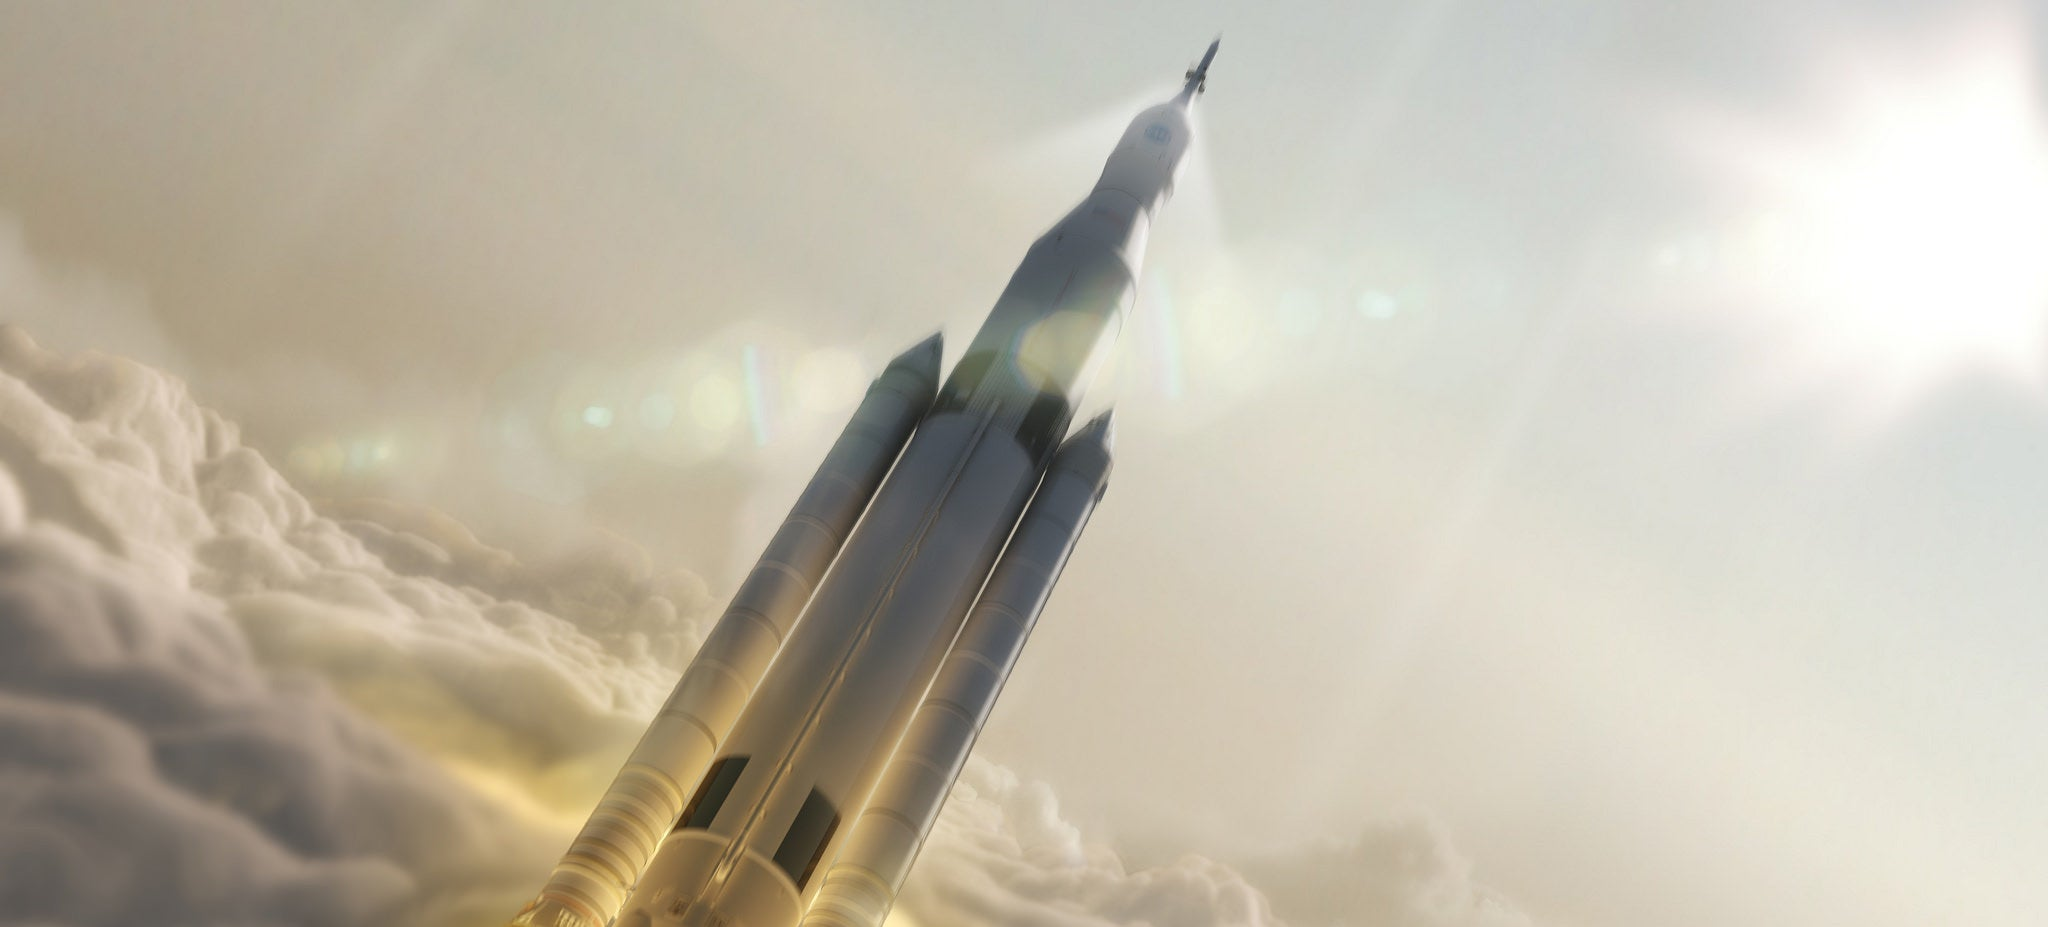 NASA's New Launch Software Is Way Over Budget and Behind Schedule